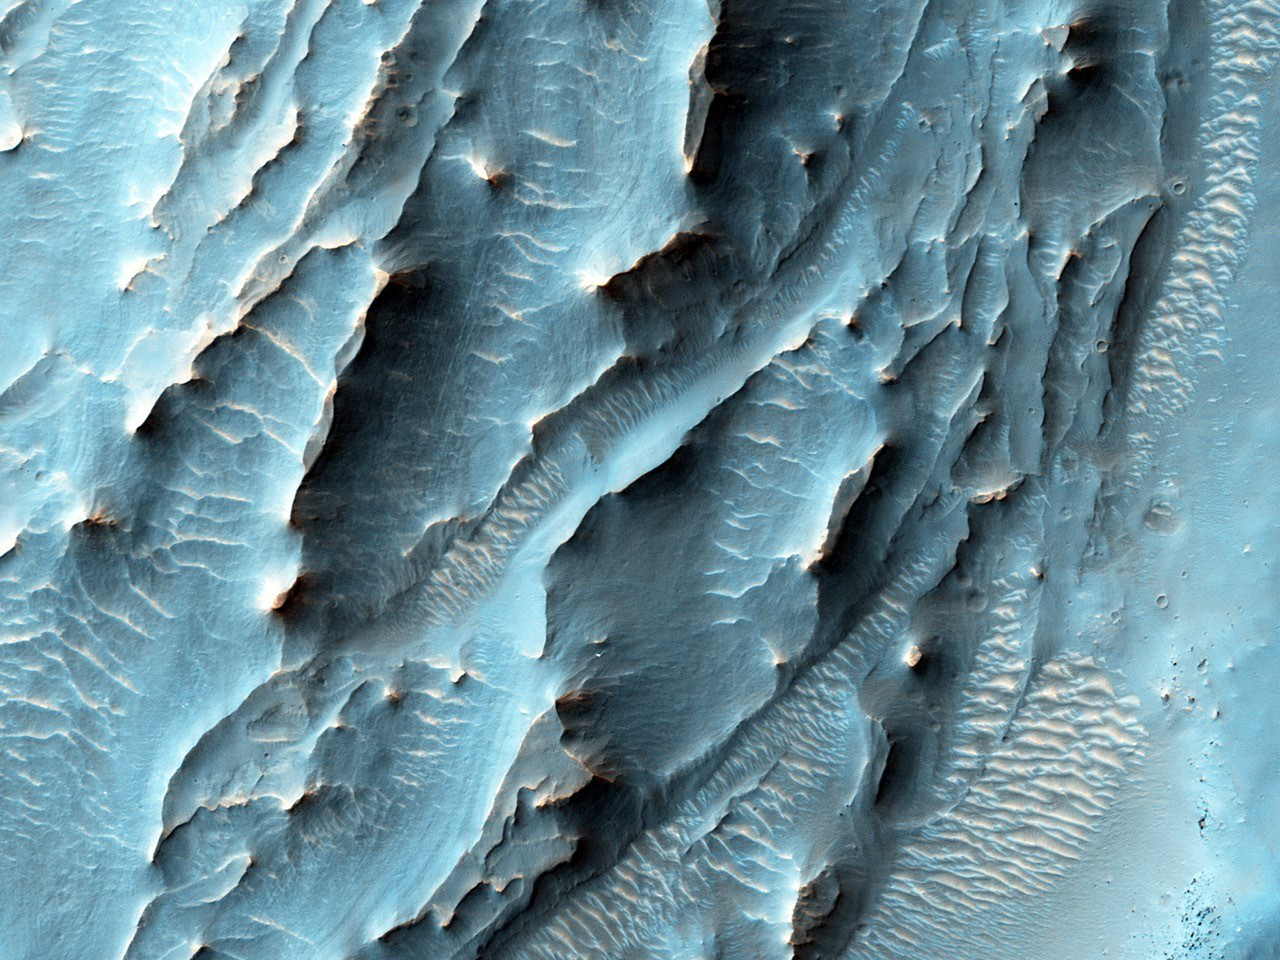 NASA's Mars Reconnaissance Orbiter, nearing the 10th anniversary of its arrival at Mars, used its High Resolution Imaging Science Experiment (HiRISE) camera to obtain this view of an area with unusual texture on the southern floor of Gale Crater. Image credits: NASA/JPL-Caltech/Univ. of Arizona.